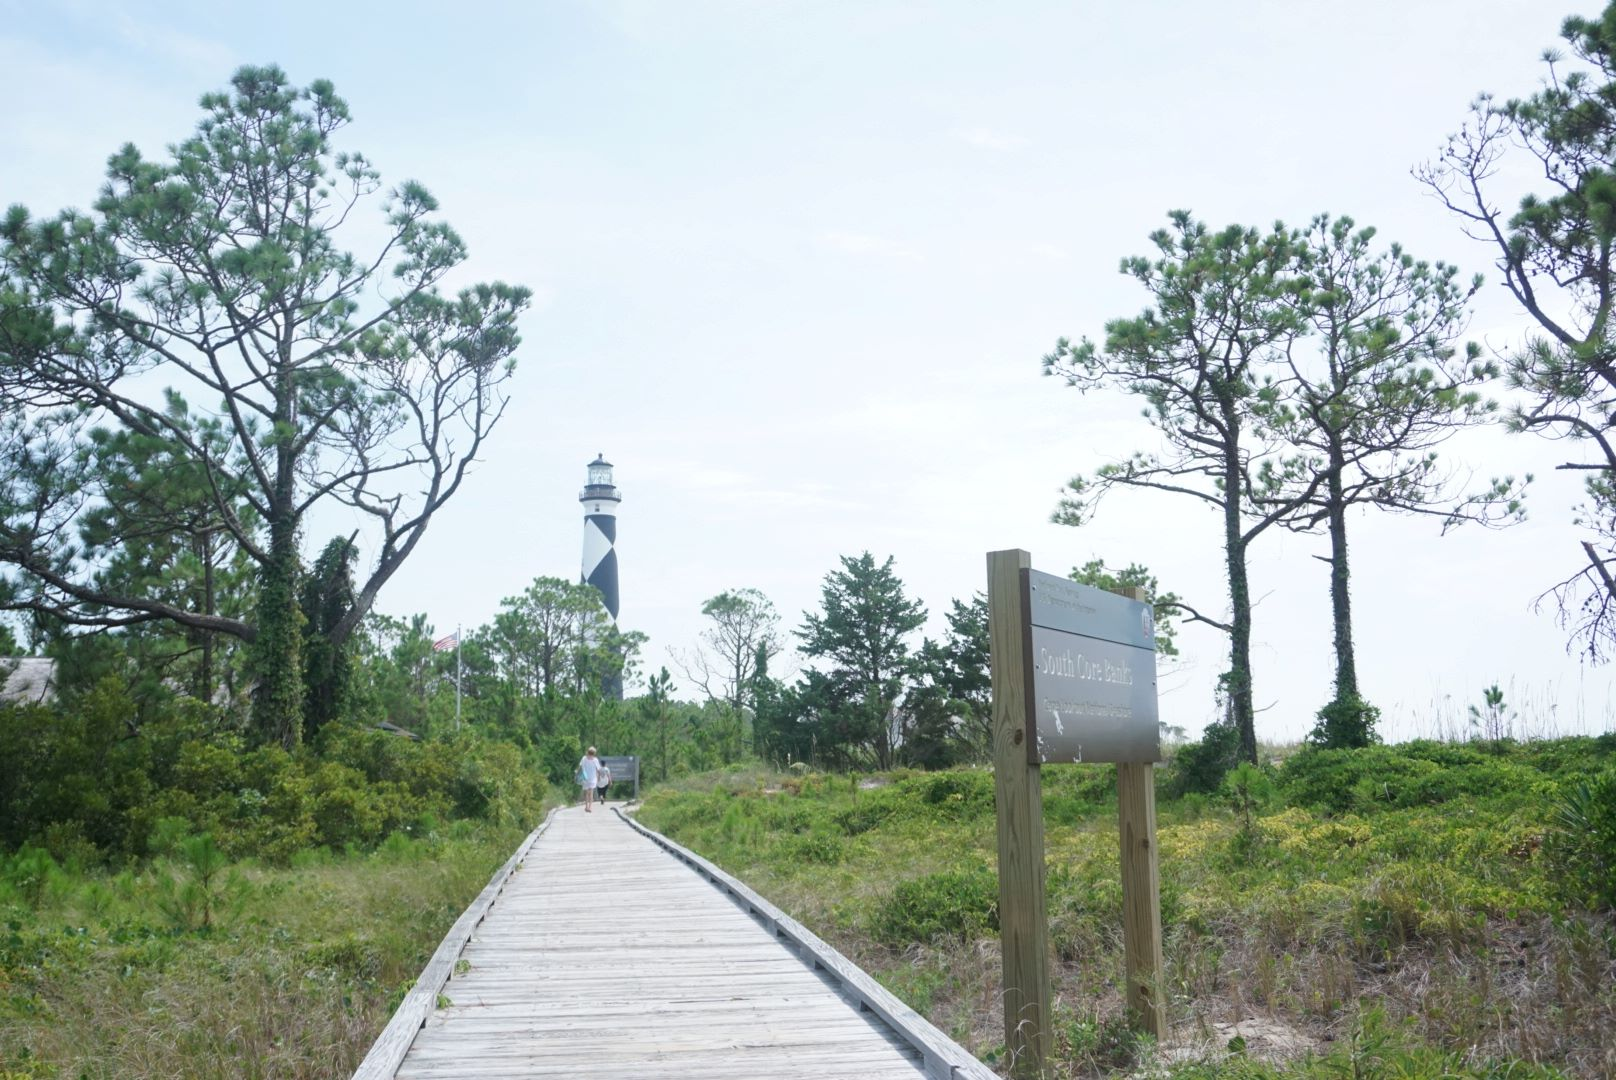 Things to do in outer banks NC